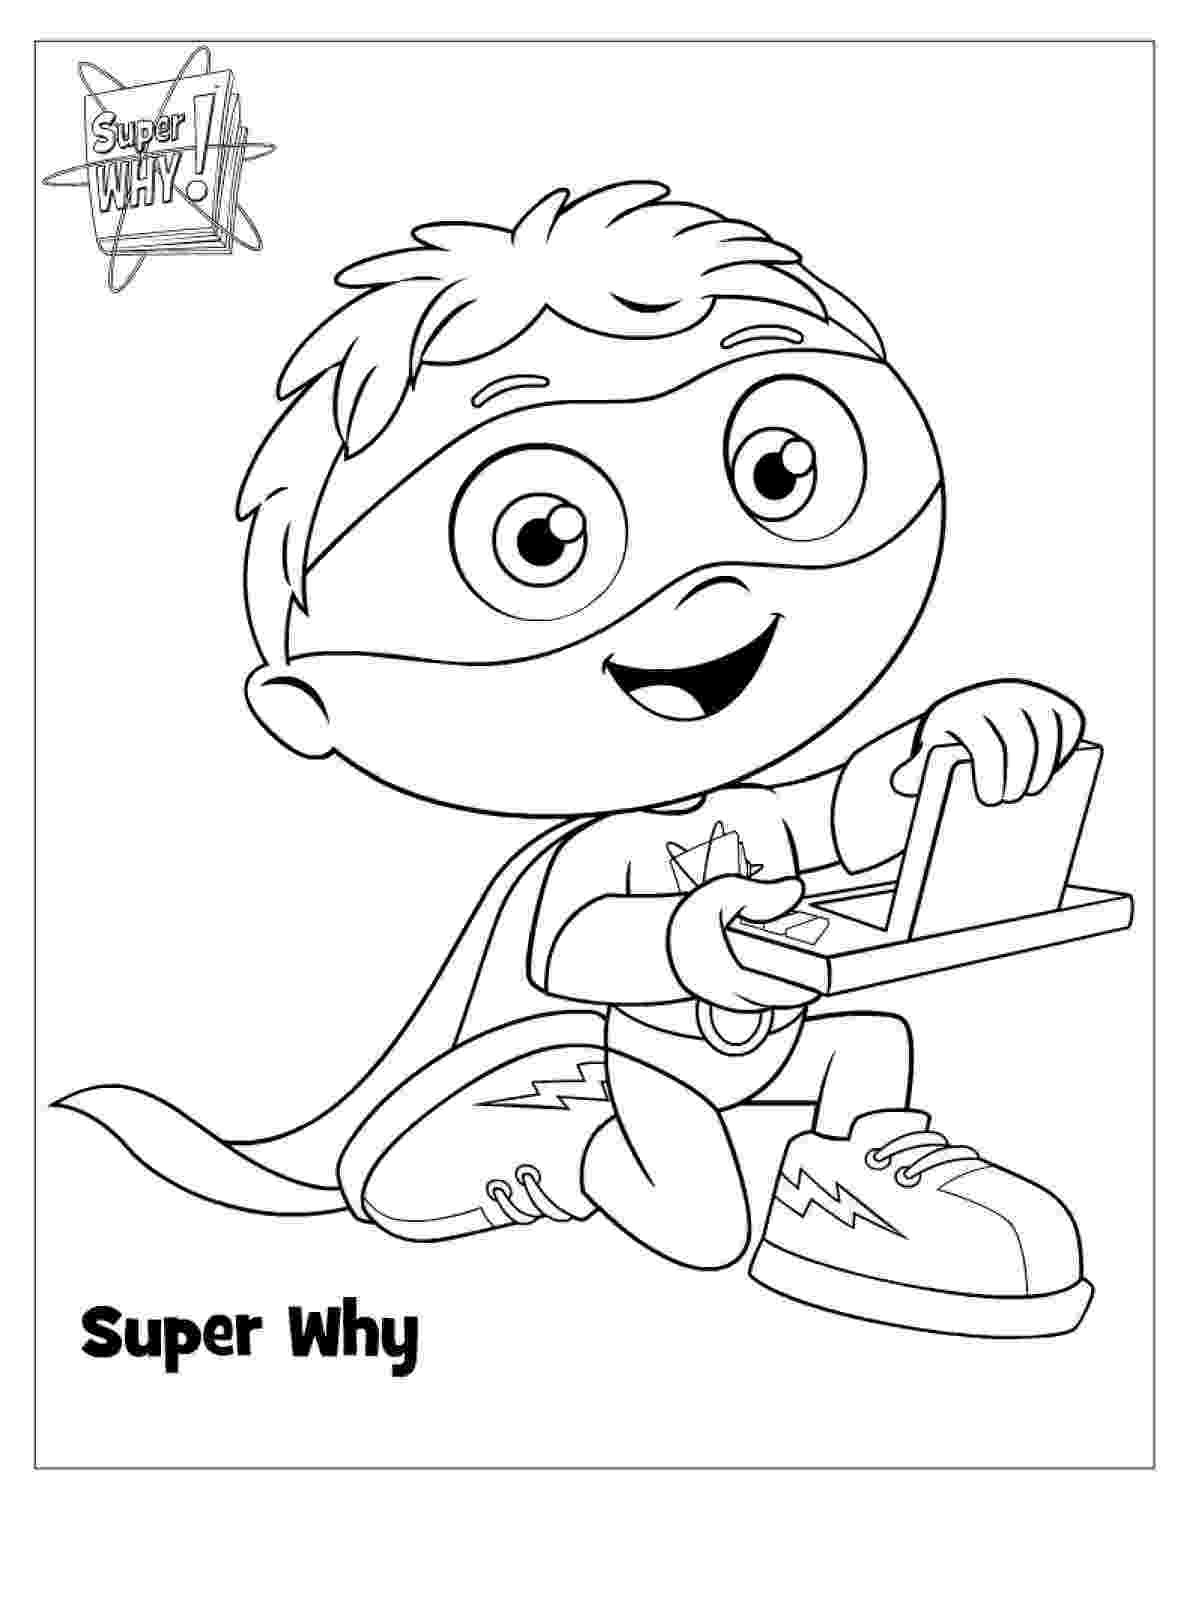 super colouring pages super why coloring pages best coloring pages for kids pages super colouring